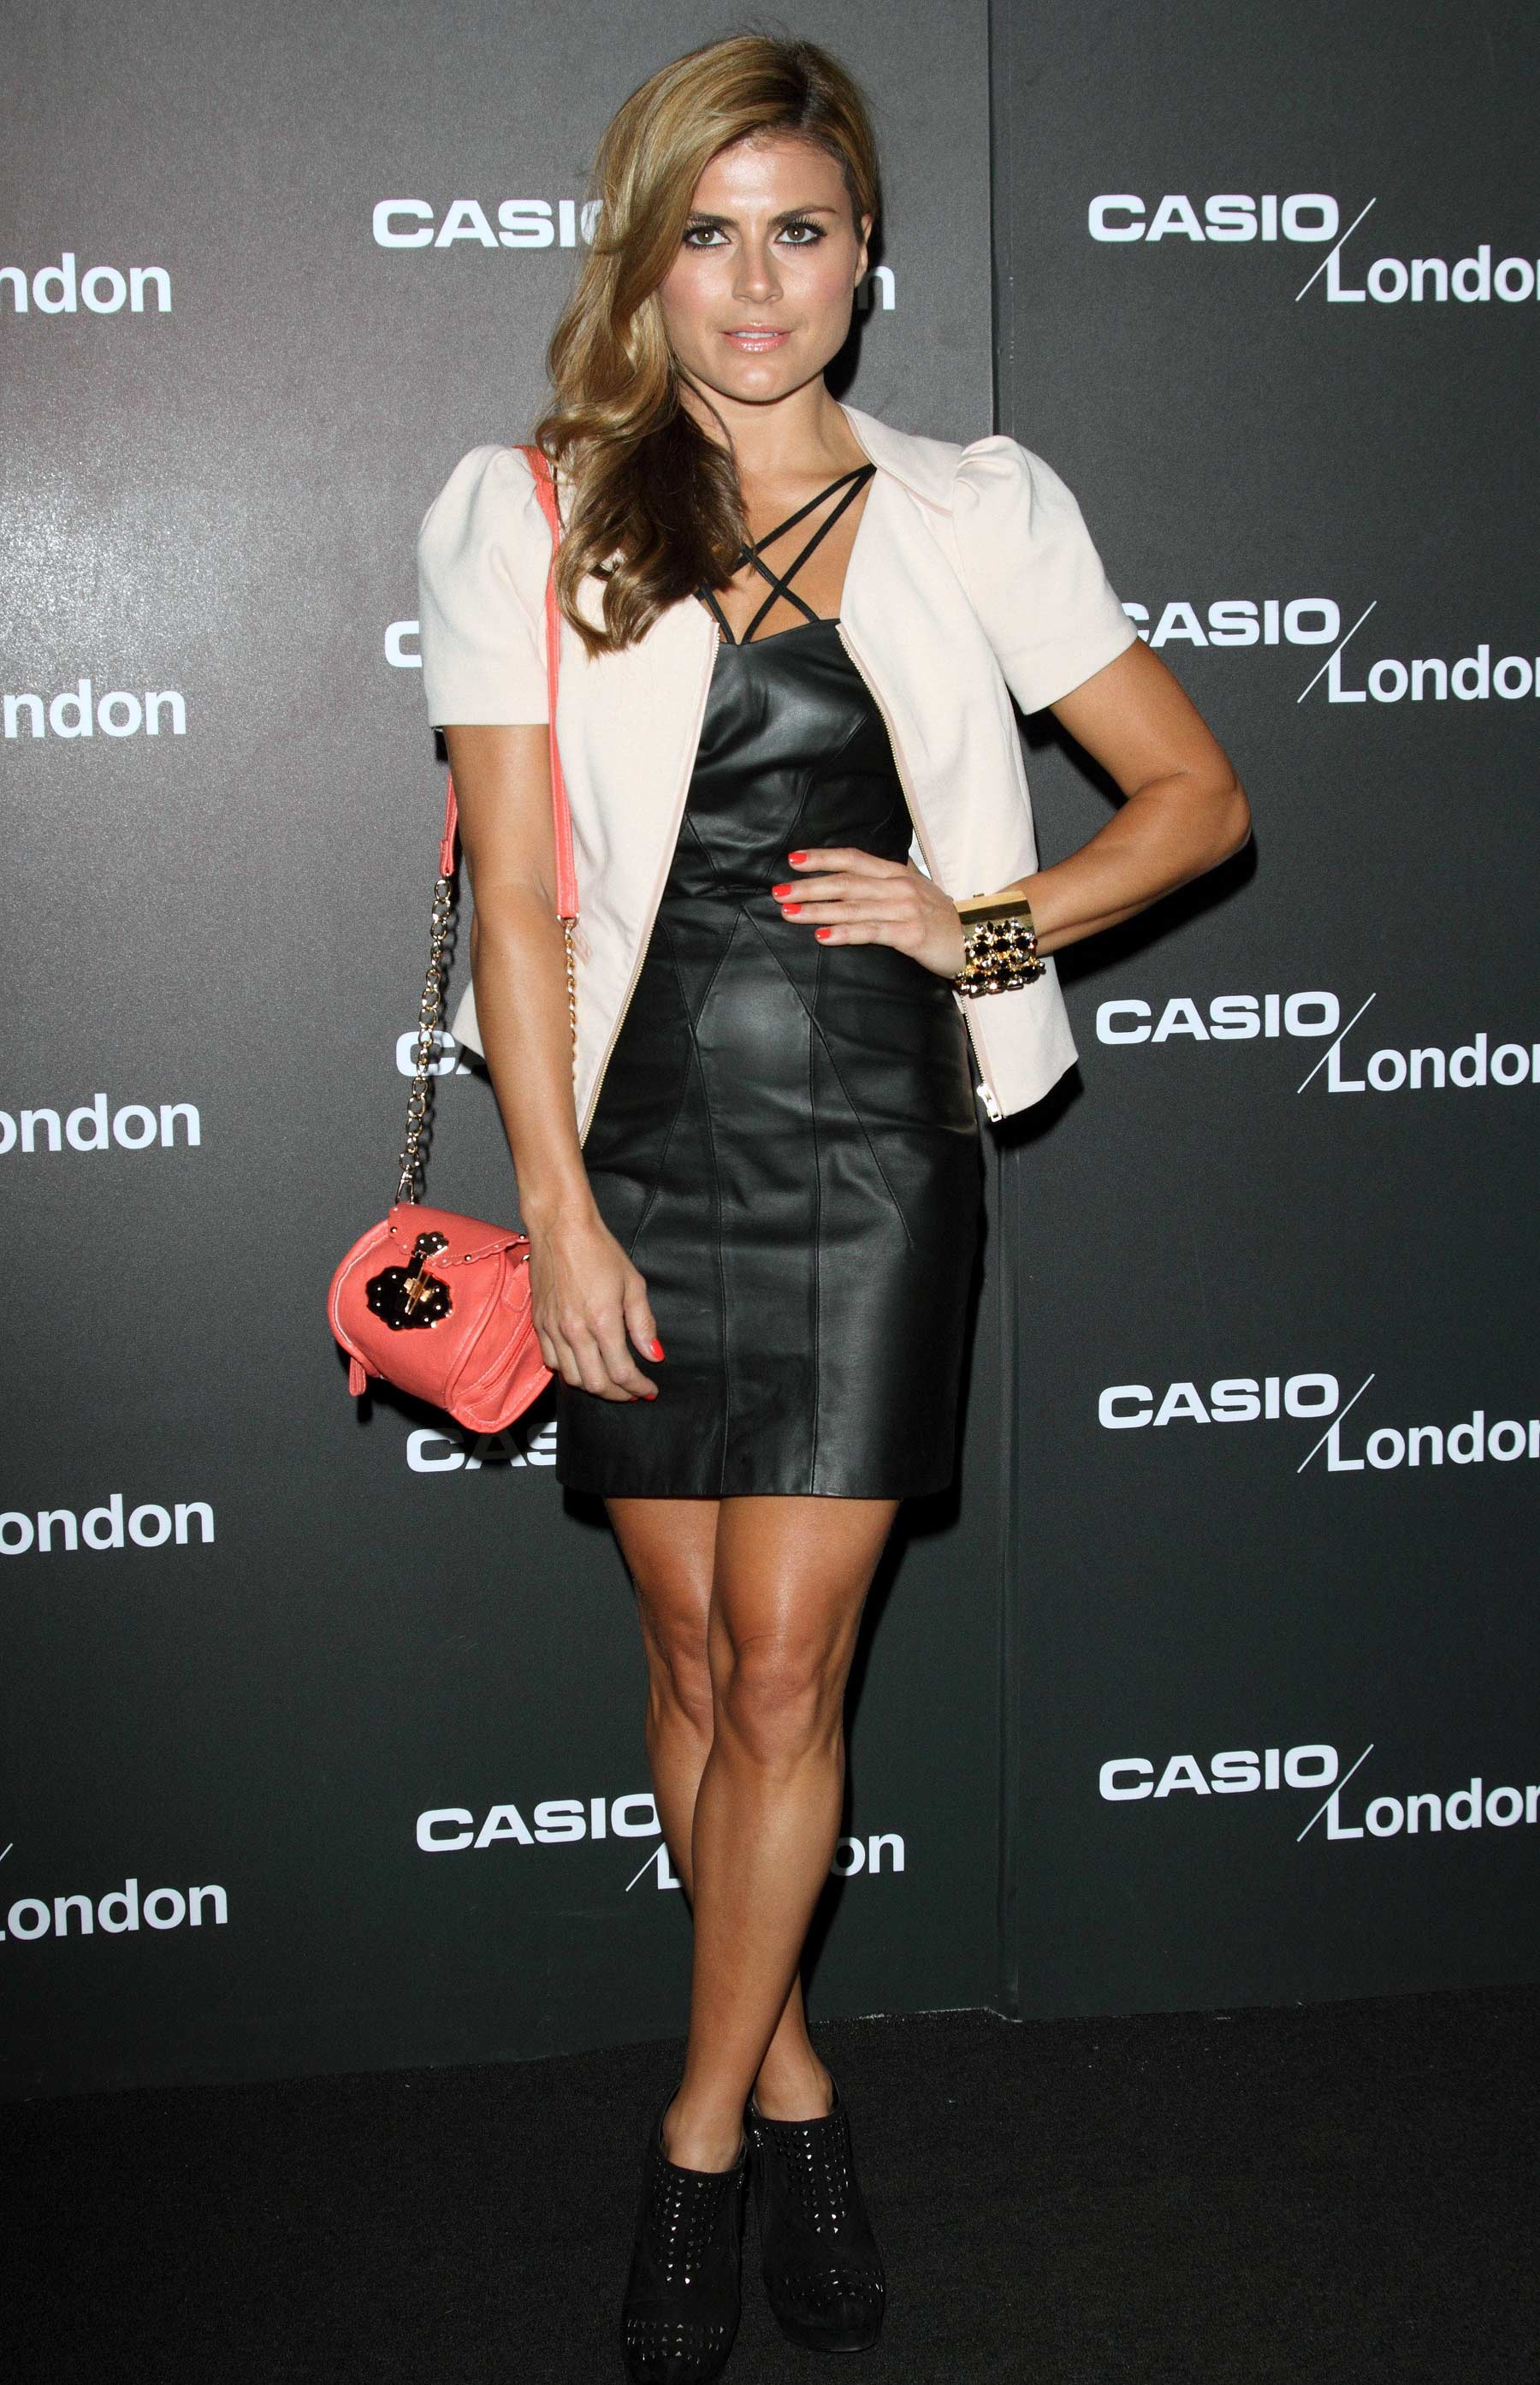 Zoe Hardman attends Casio London Store 1st Birthday Party